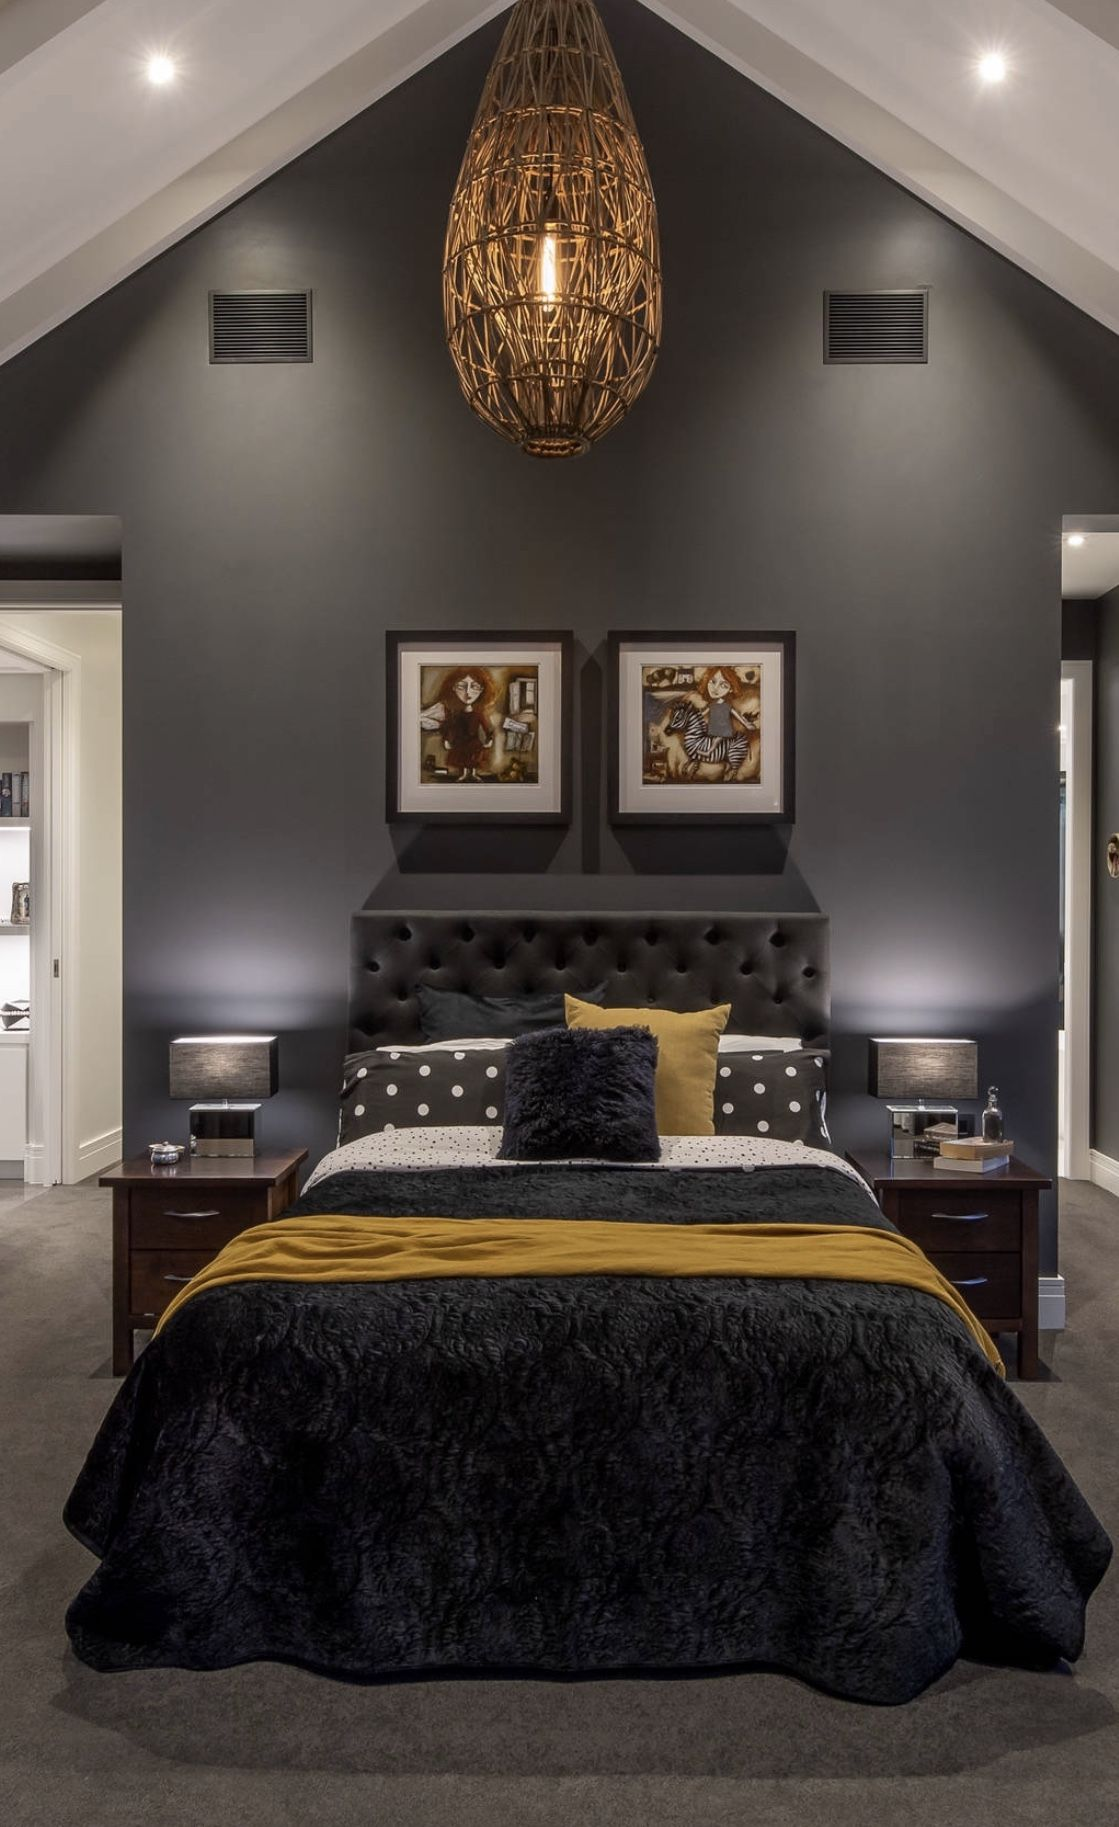 Beautiful Black And Yellow Modern Style Bedroom Decor Black Bedroom Decor Modern Style Bedroom Black Bedroom Furniture